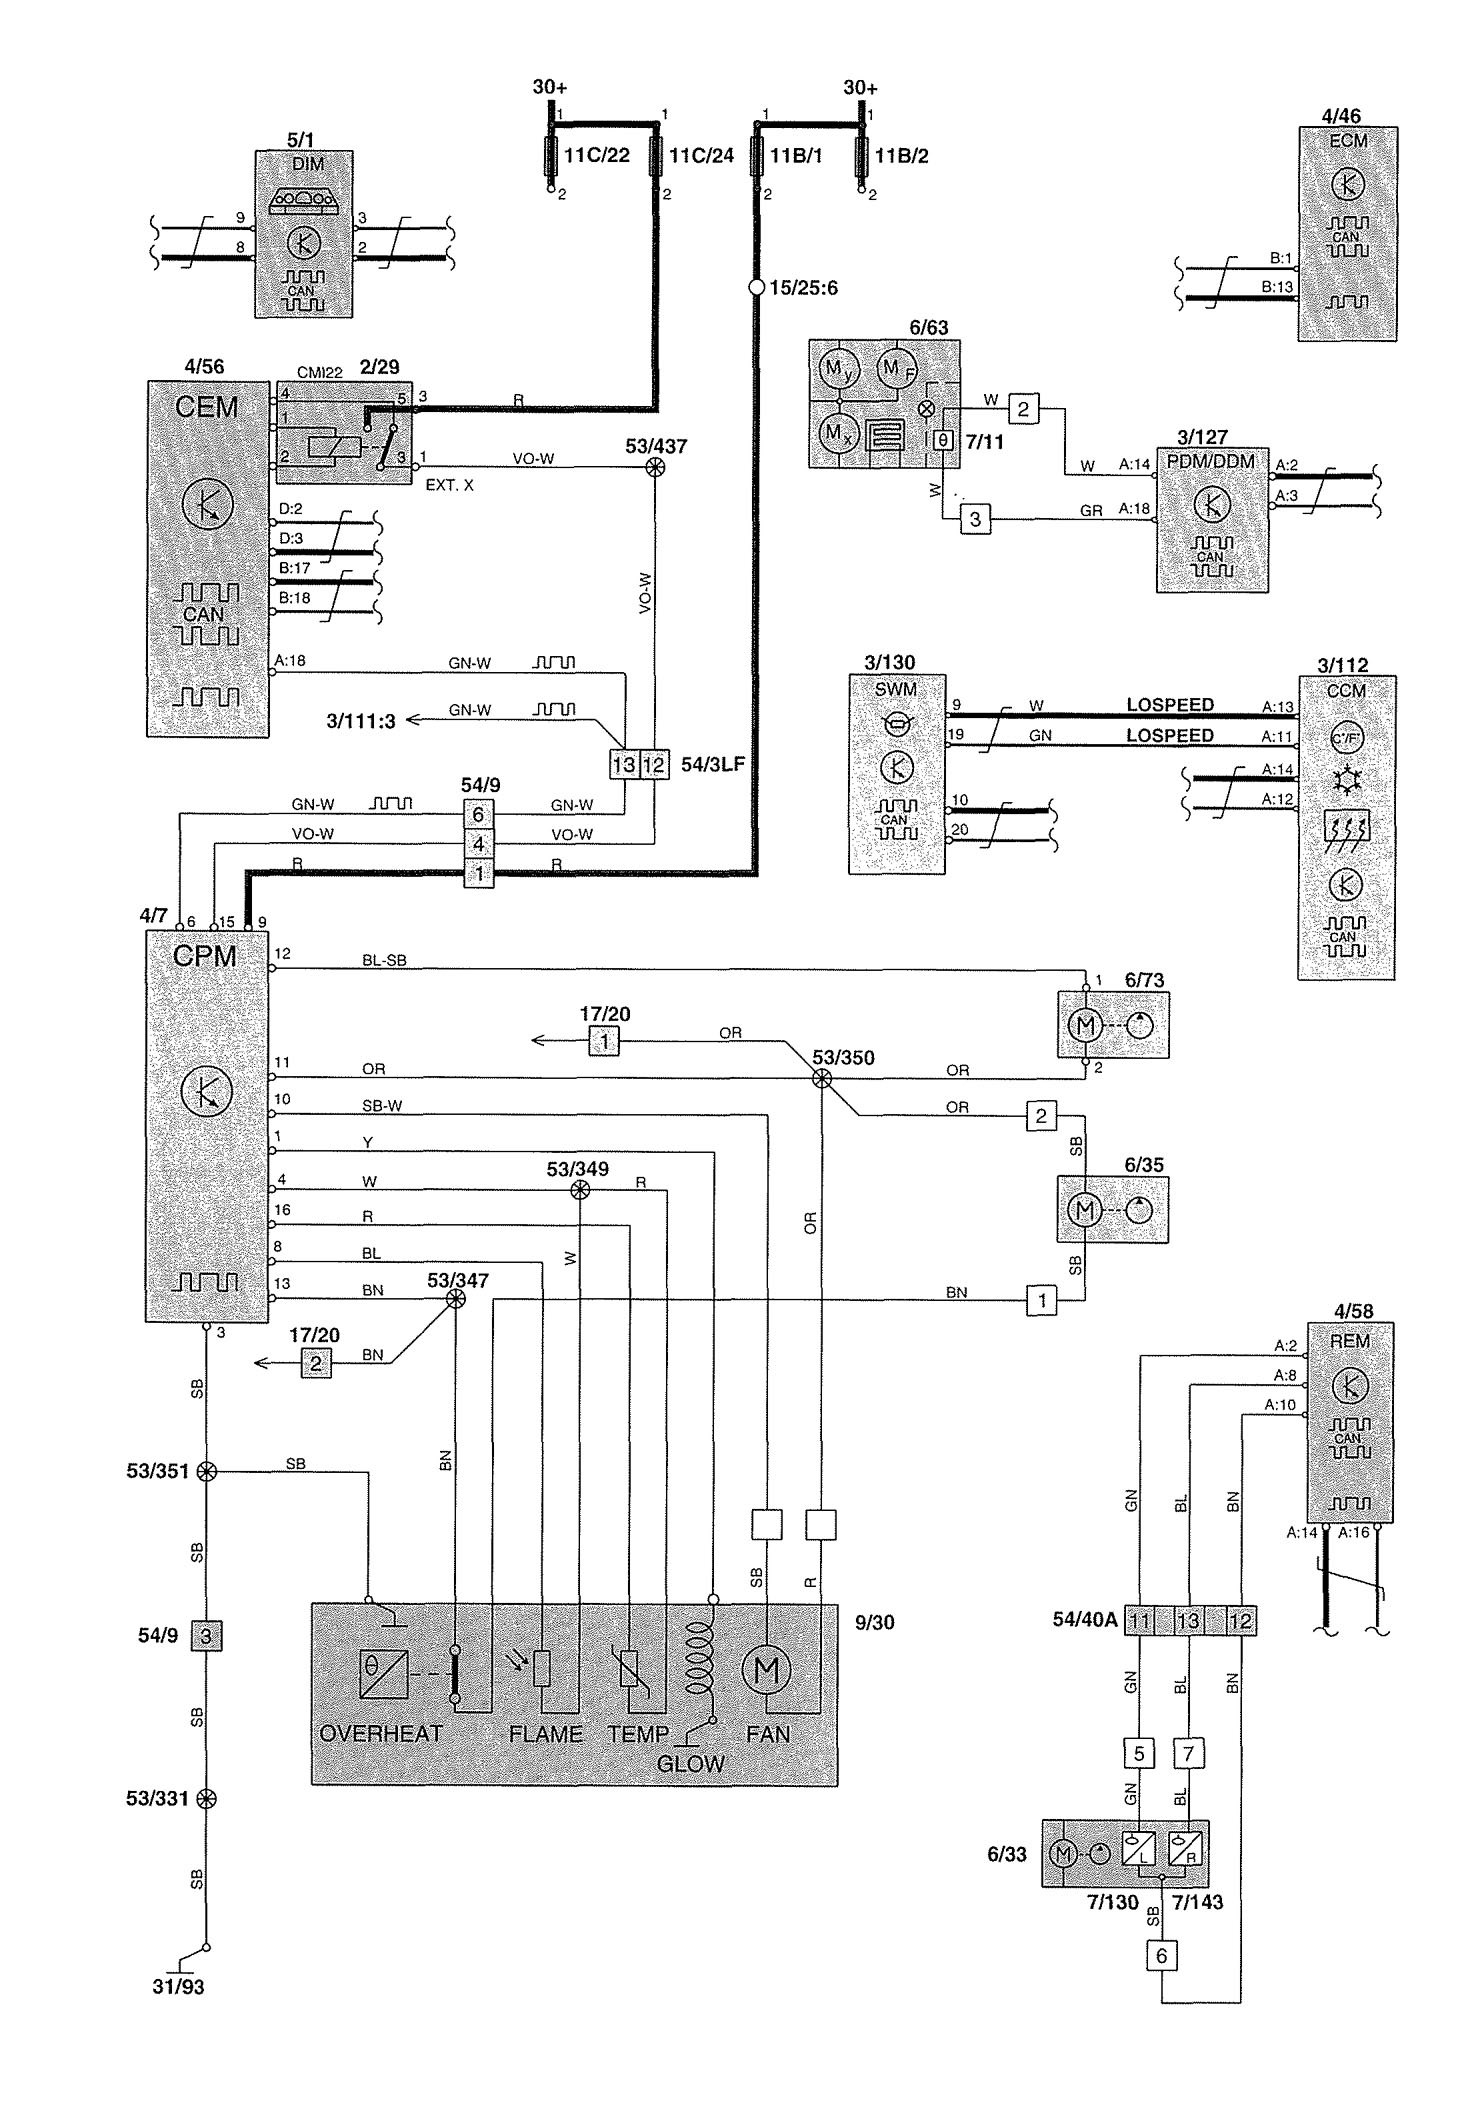 1997 Bmw 740il Heater Wiring Diagram • Wiring Diagram For Free